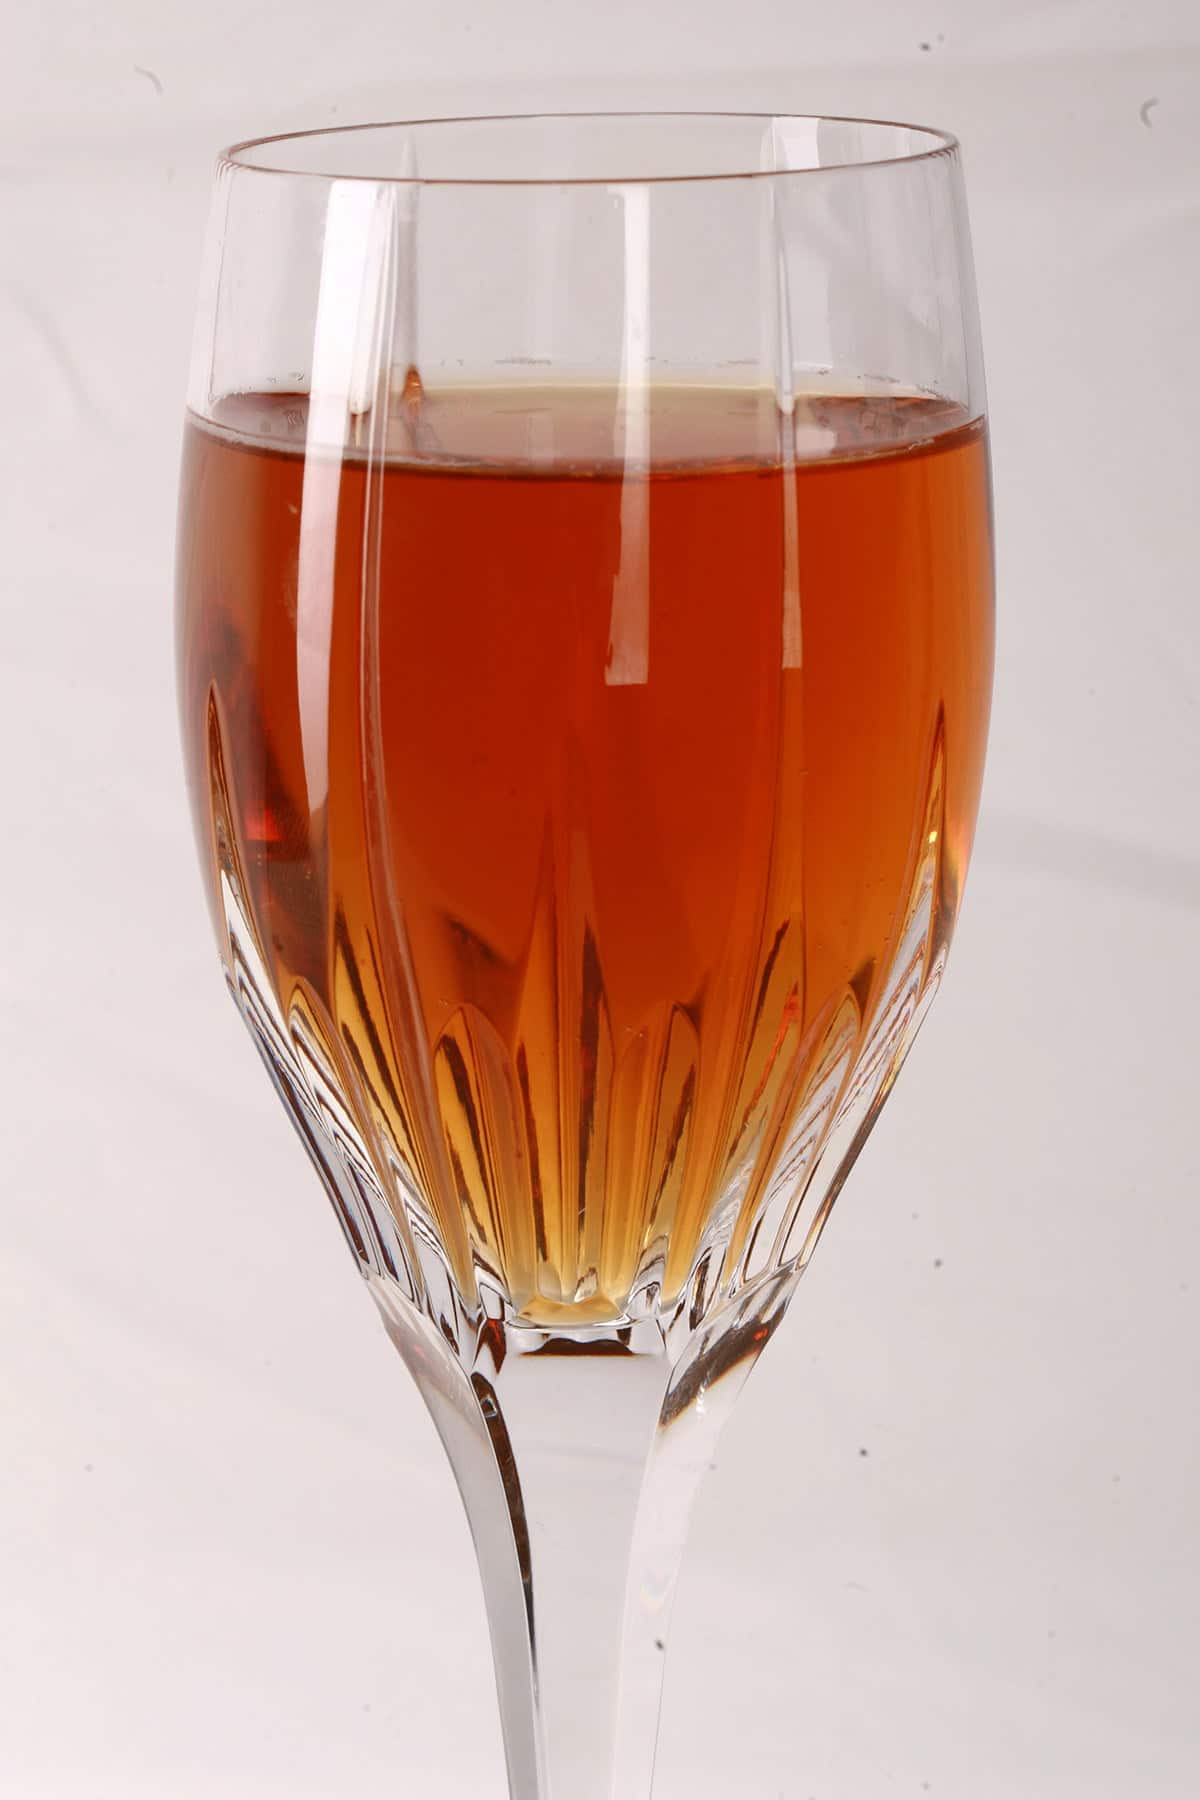 Close up photo of a tall wine glass with dark amber mead in it.